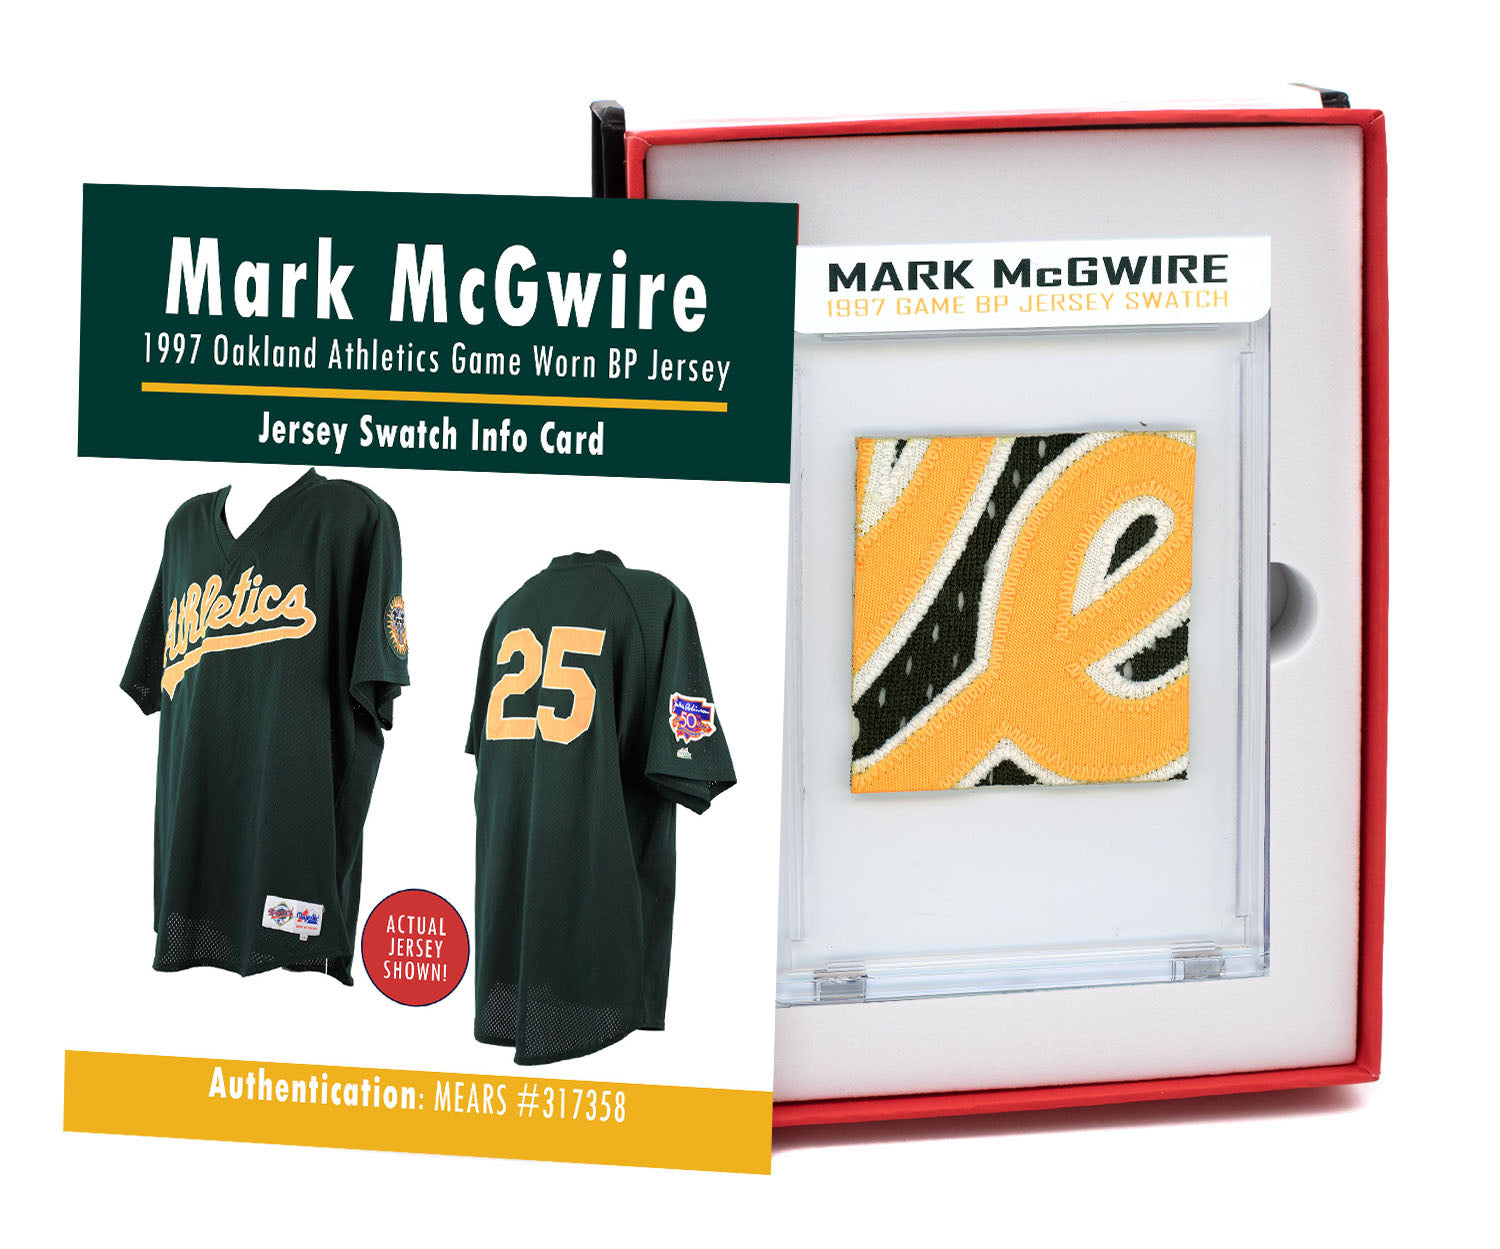 MARK McGWIRE 1997 ATHLETICS GAME WORN BP JERSEY MYSTERY SEALED SWATCH BOX!